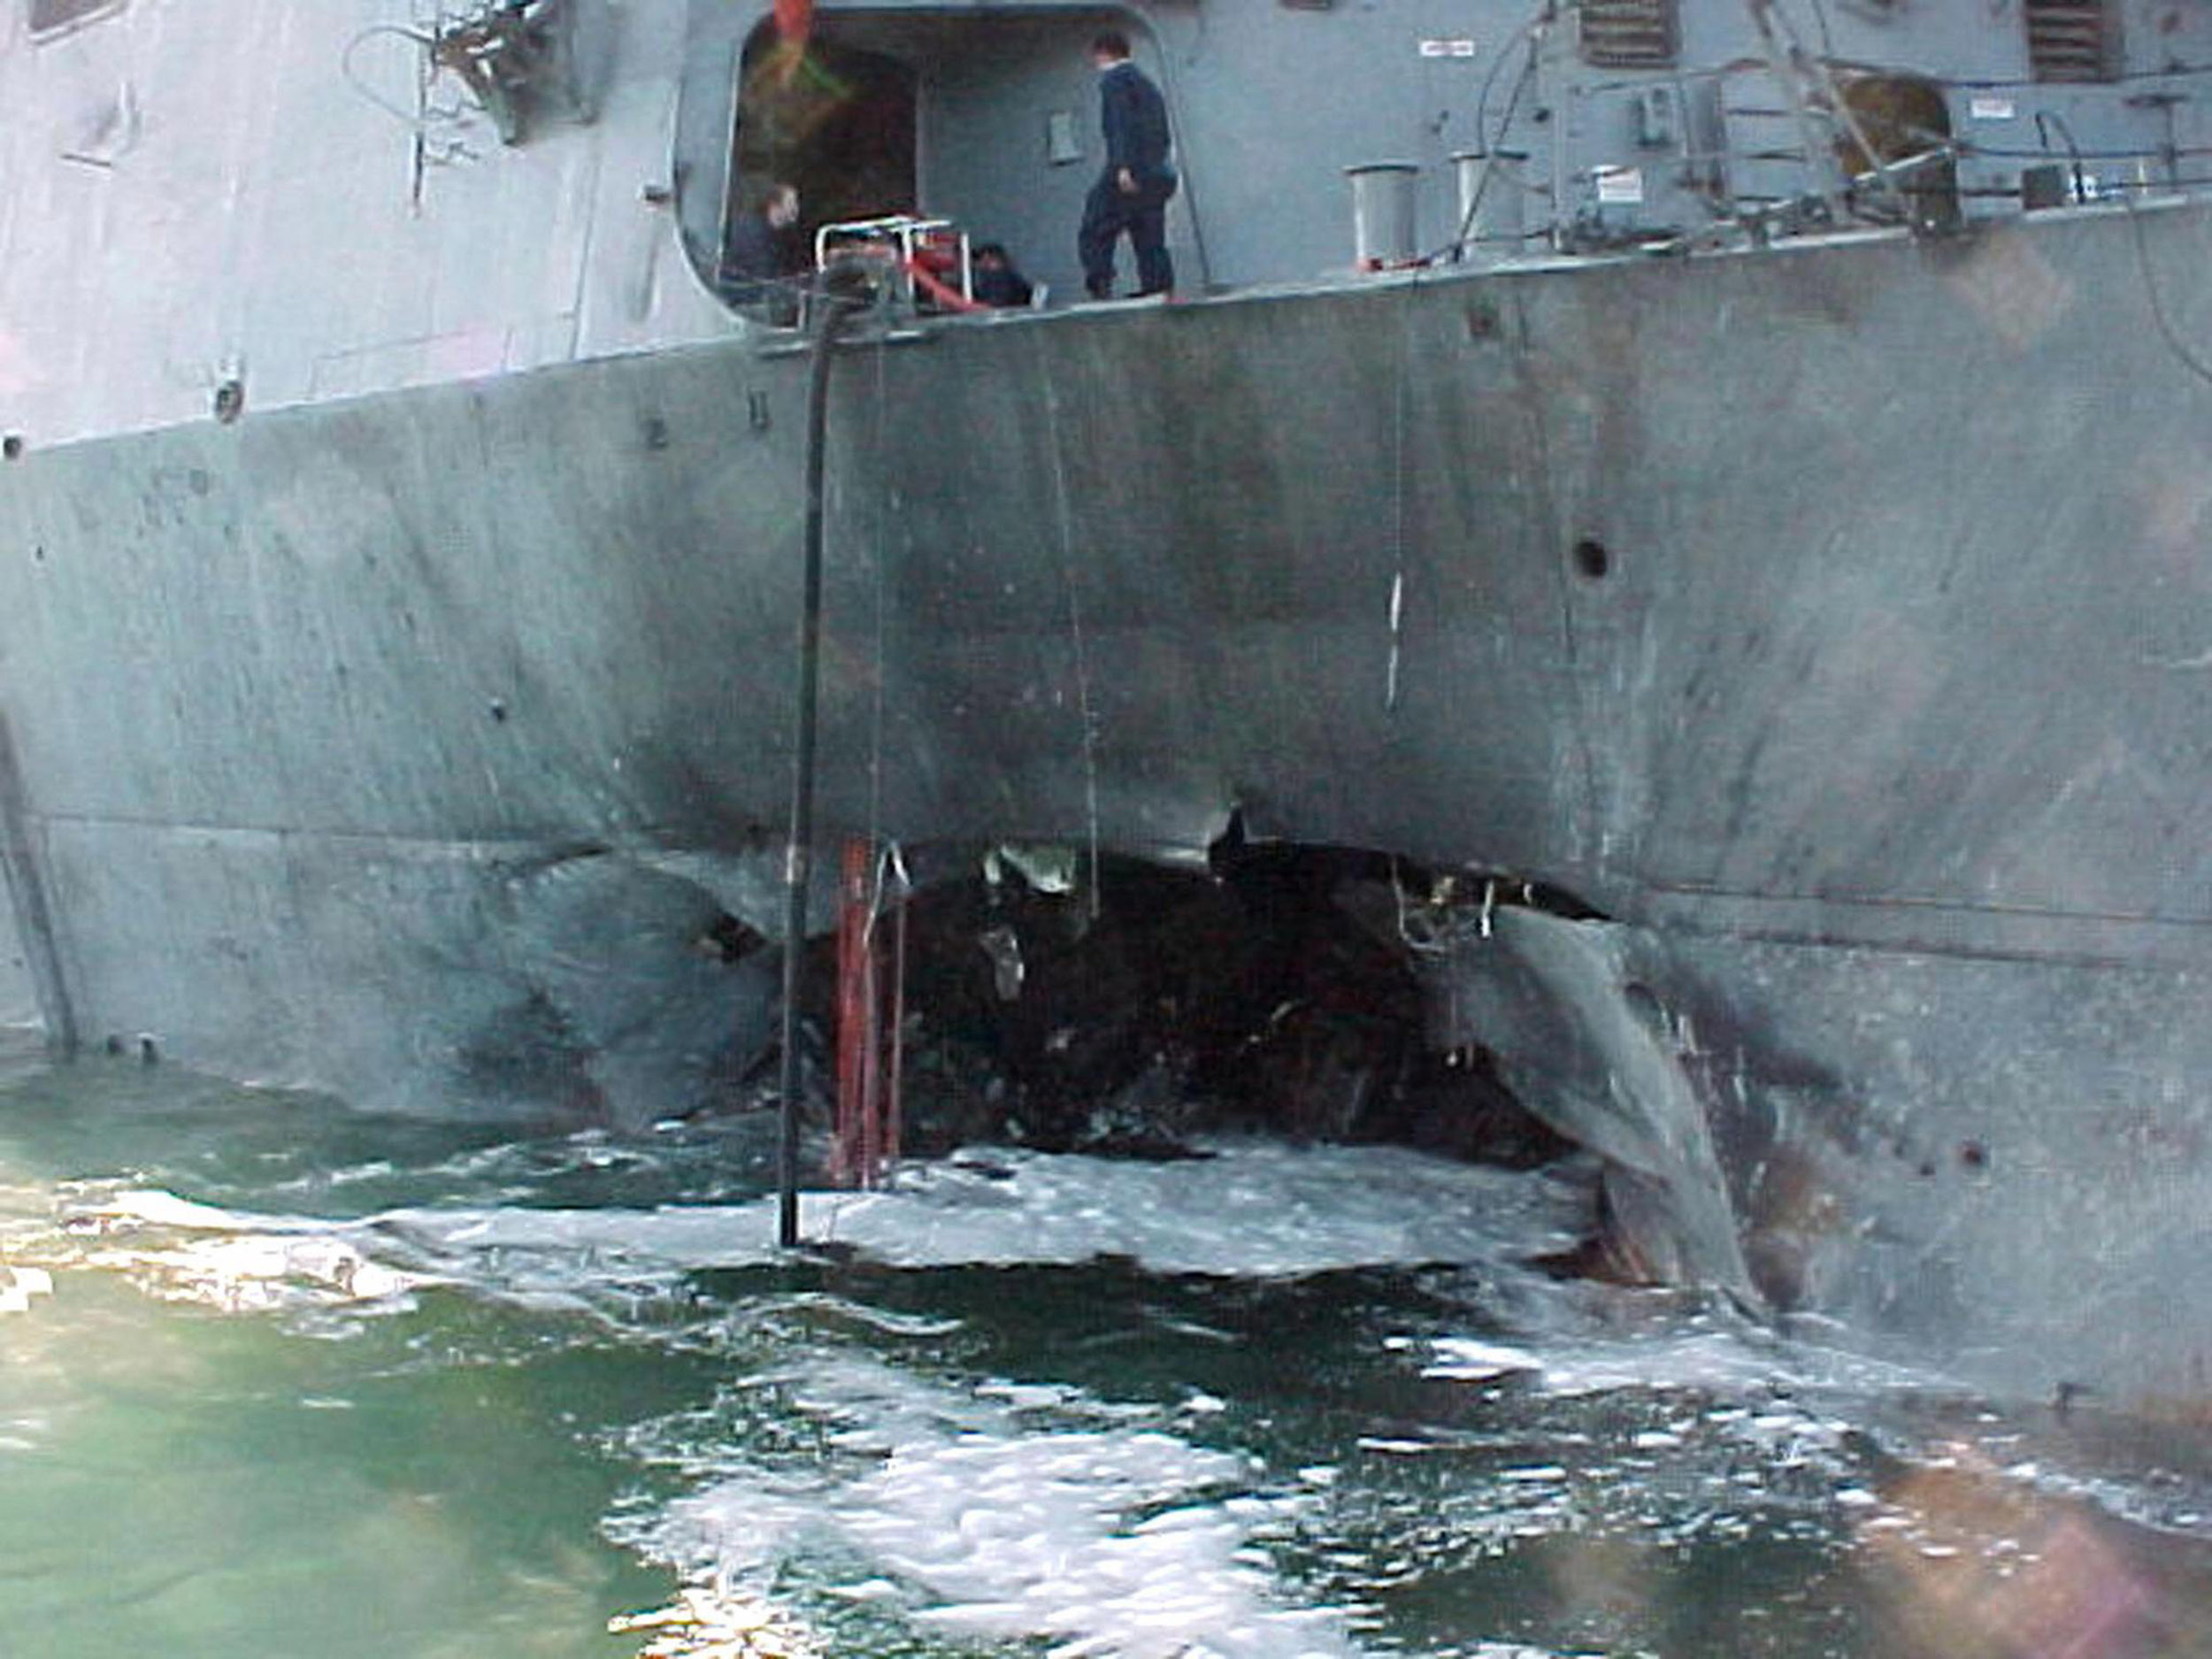 Qaeda militant tied to deadly USS Cole bombing killed in airstrike